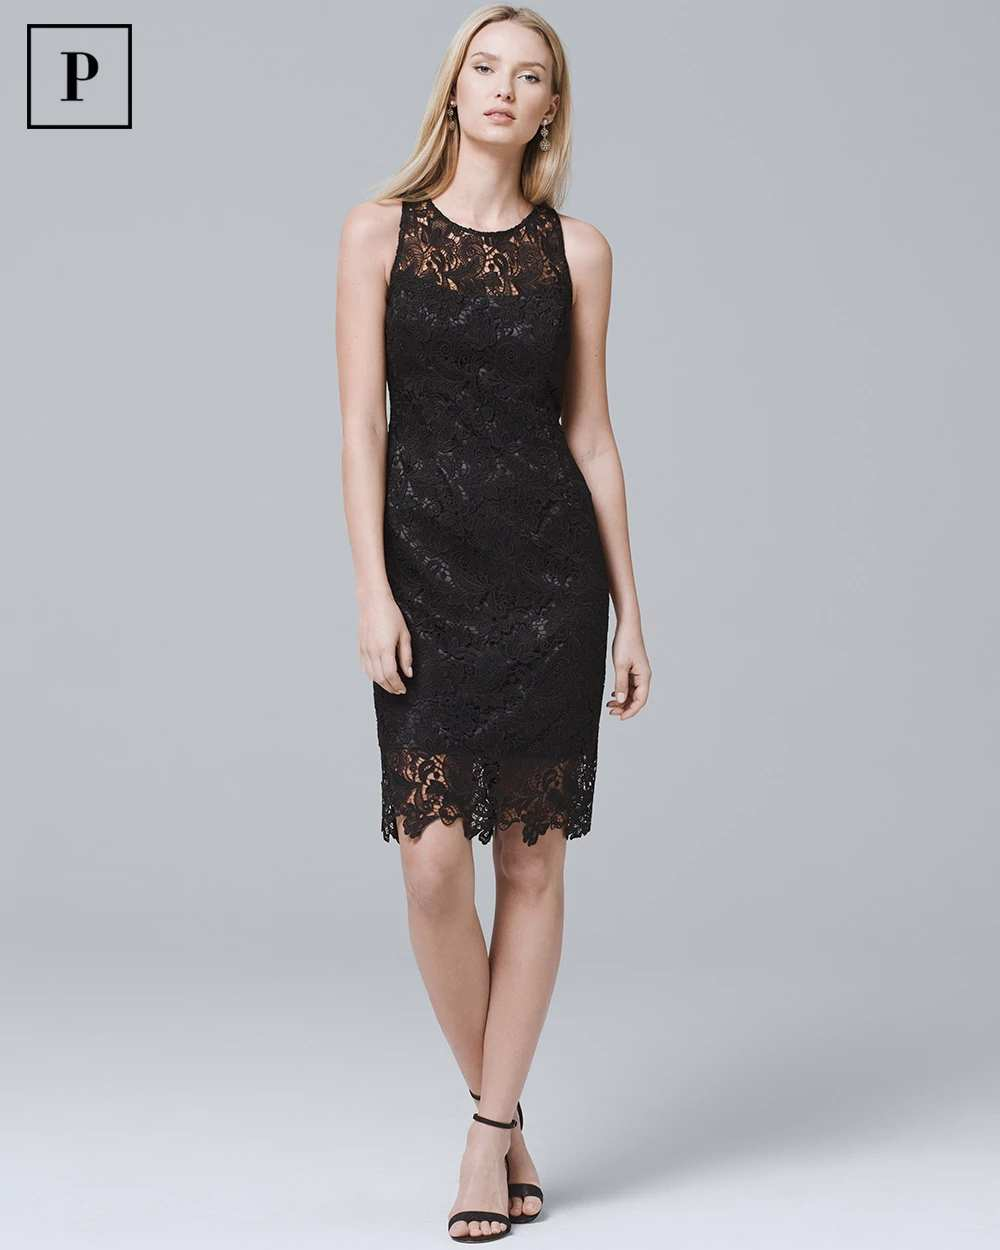 PETITE SLEEVELESS BLACK LACE SHEATH DRESS